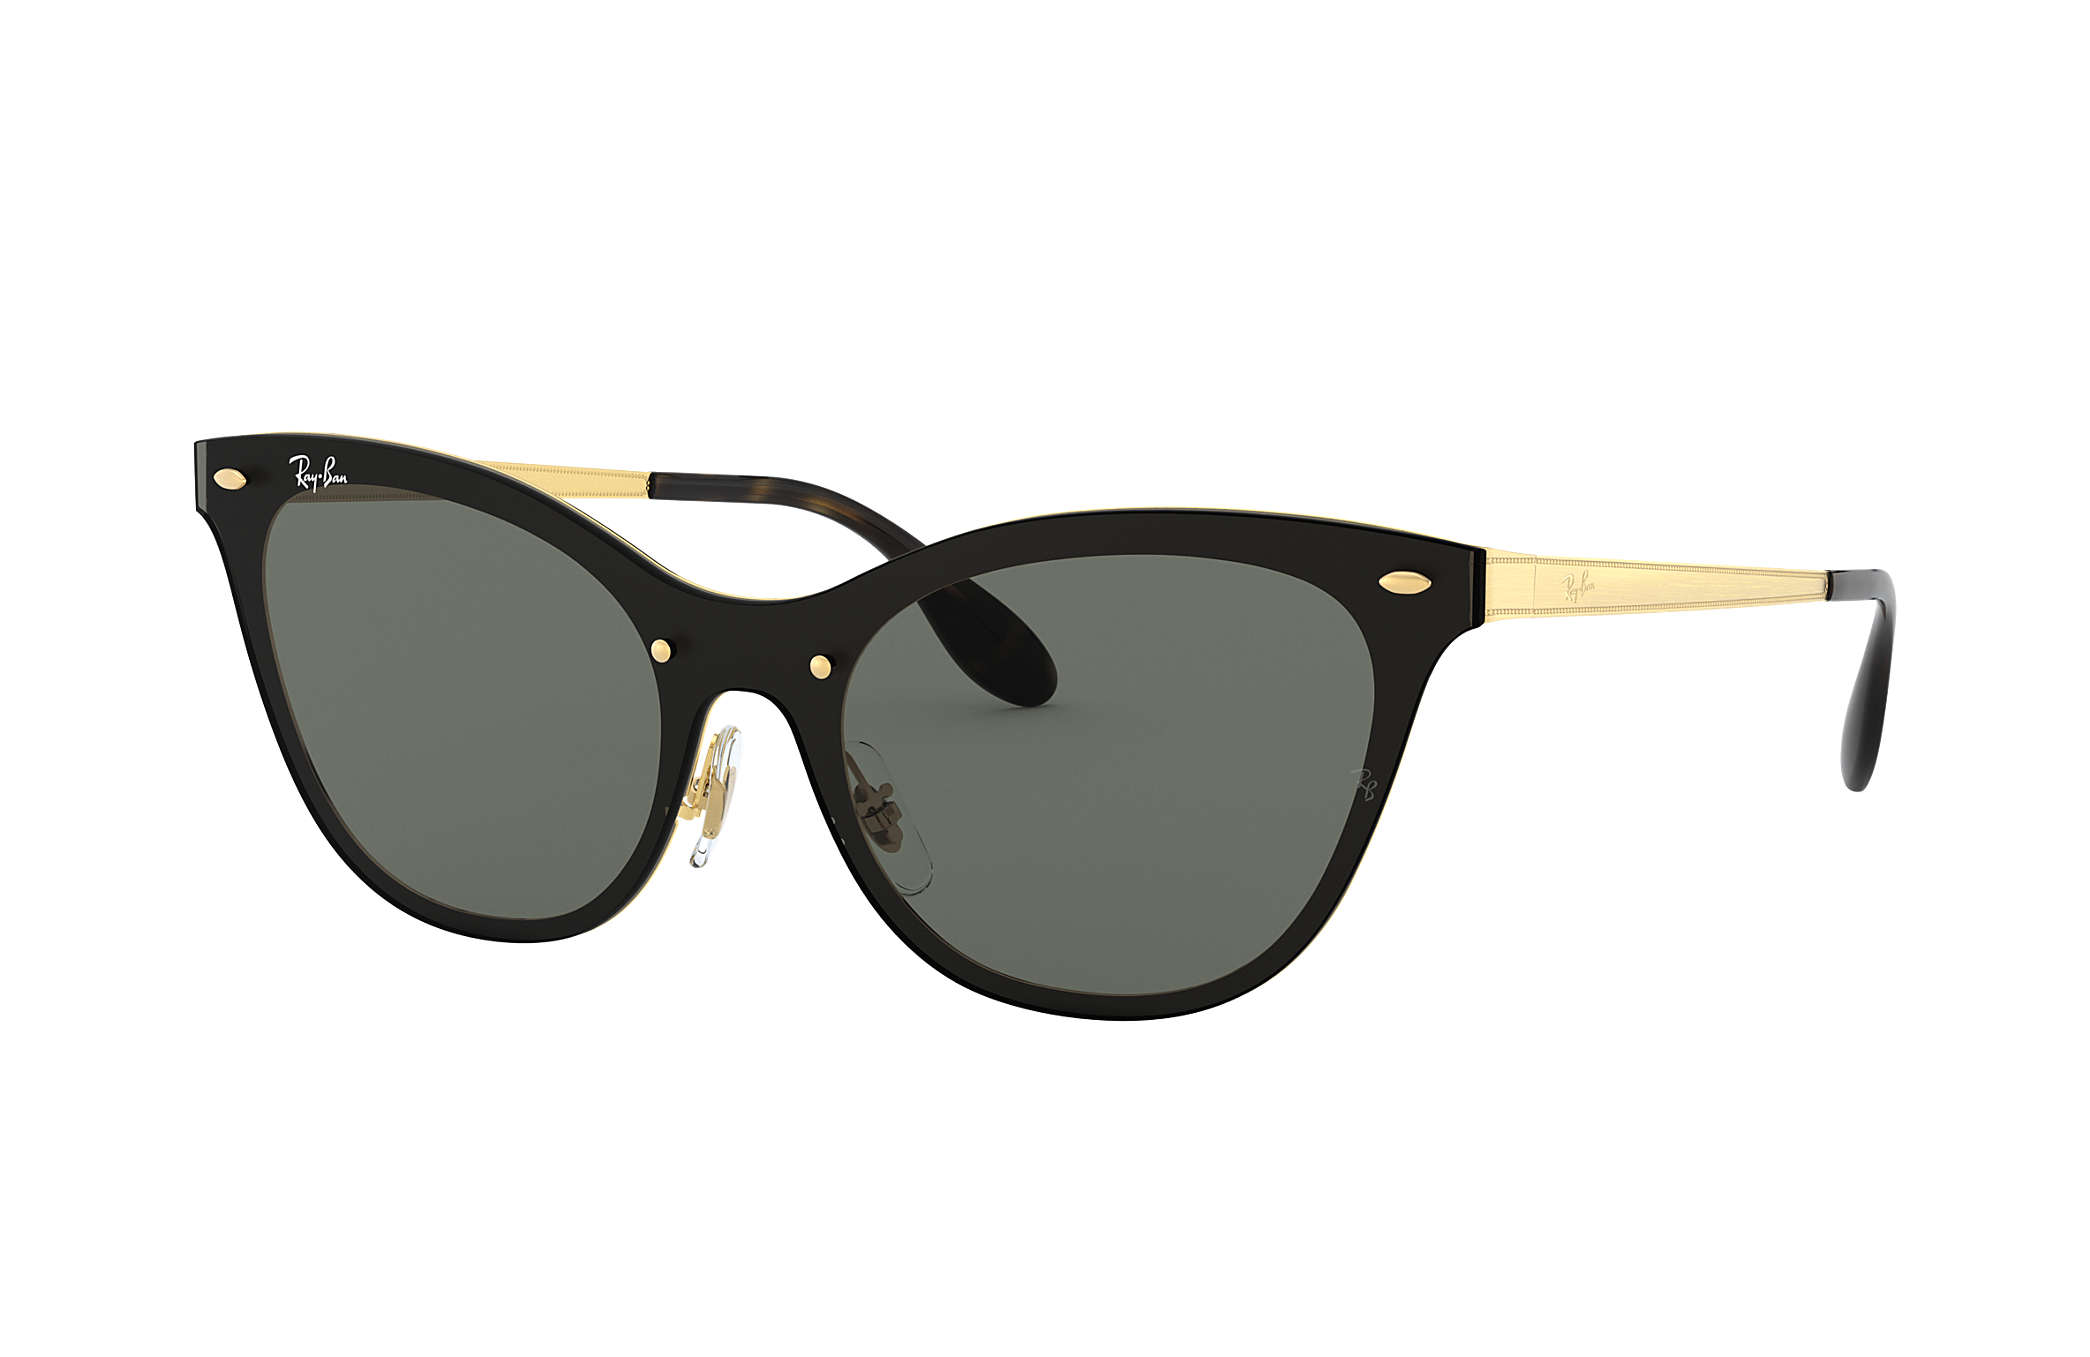 Ray-Ban BLAZE CAT EYE Gold with Green Classic lens